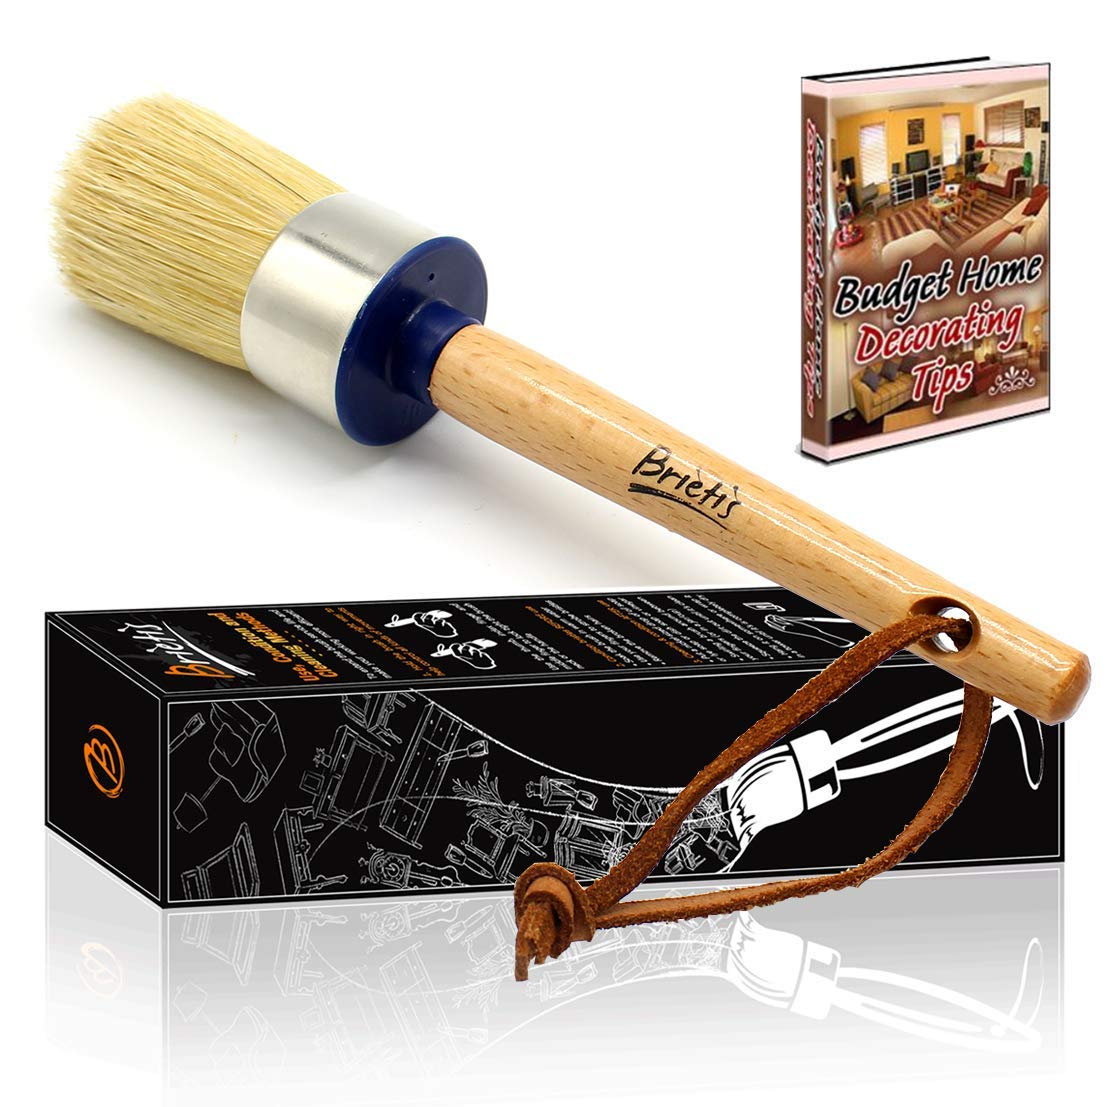 Brietis Premium Chalk & Wax Brush, Natural Boar bristles, Smooth Coverage for Furniture Painting, waxing, chalked Paint, Milk Paint, Stencils, Clear Wax | Soft, Large Round Brushes (1) by Brietis